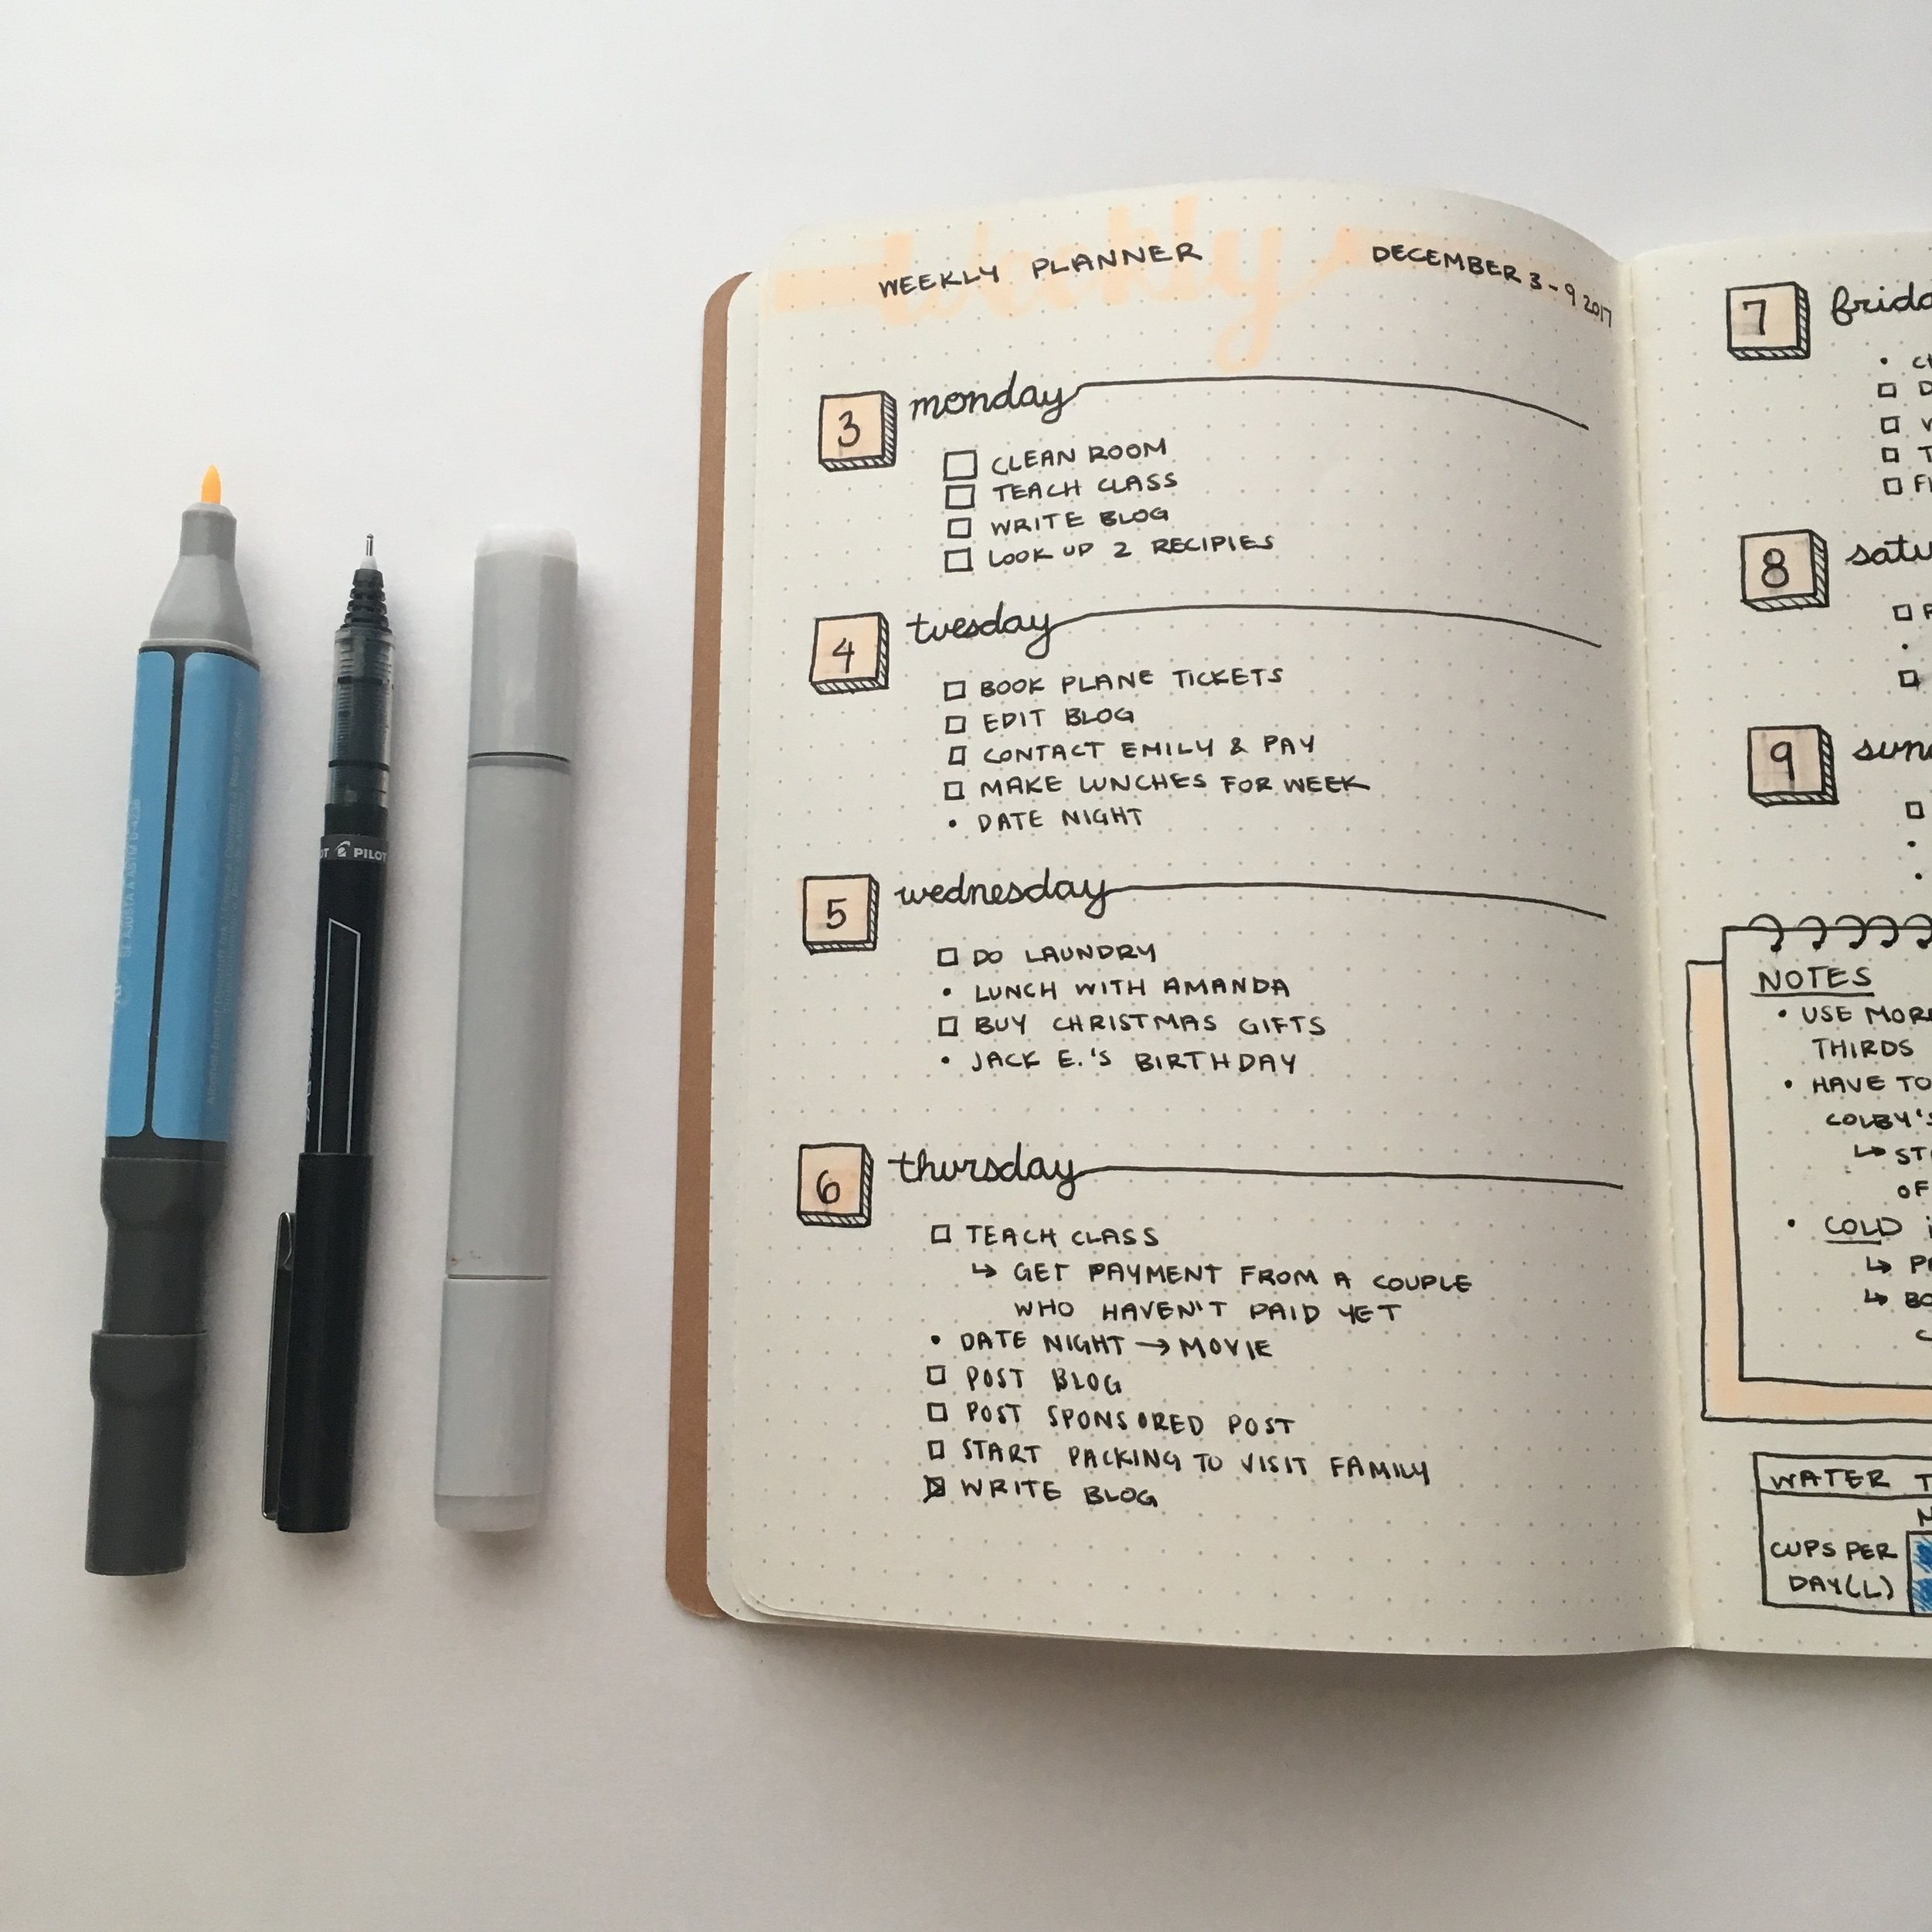 A bullet journal (like mine, pictured above) is one easy way to keep track of everything you need to get done for the week.